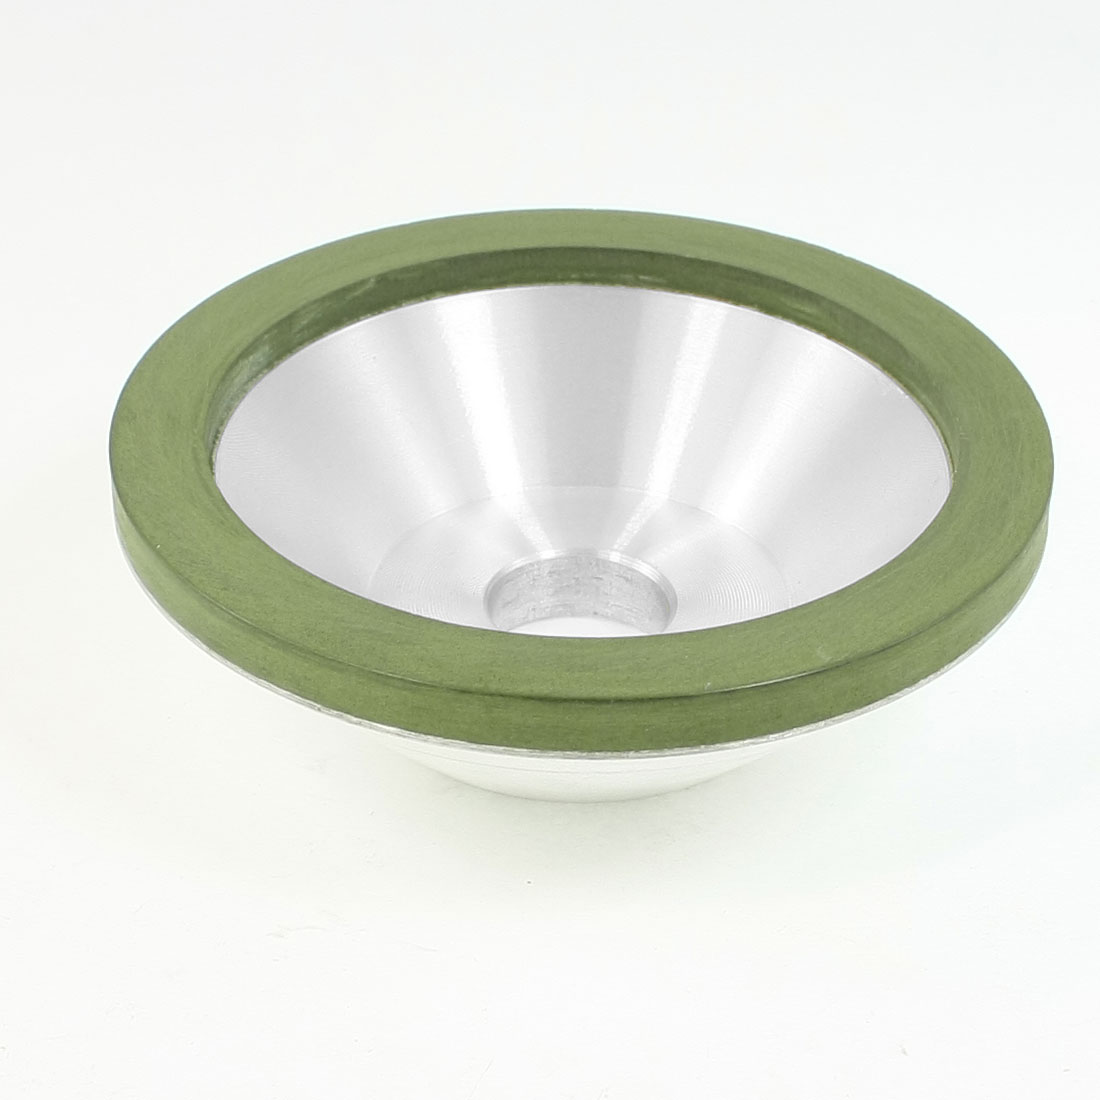 100mm OD 20mm Mounted Hole Resin Bond 1000 Grit Diamond Grinding Wheel